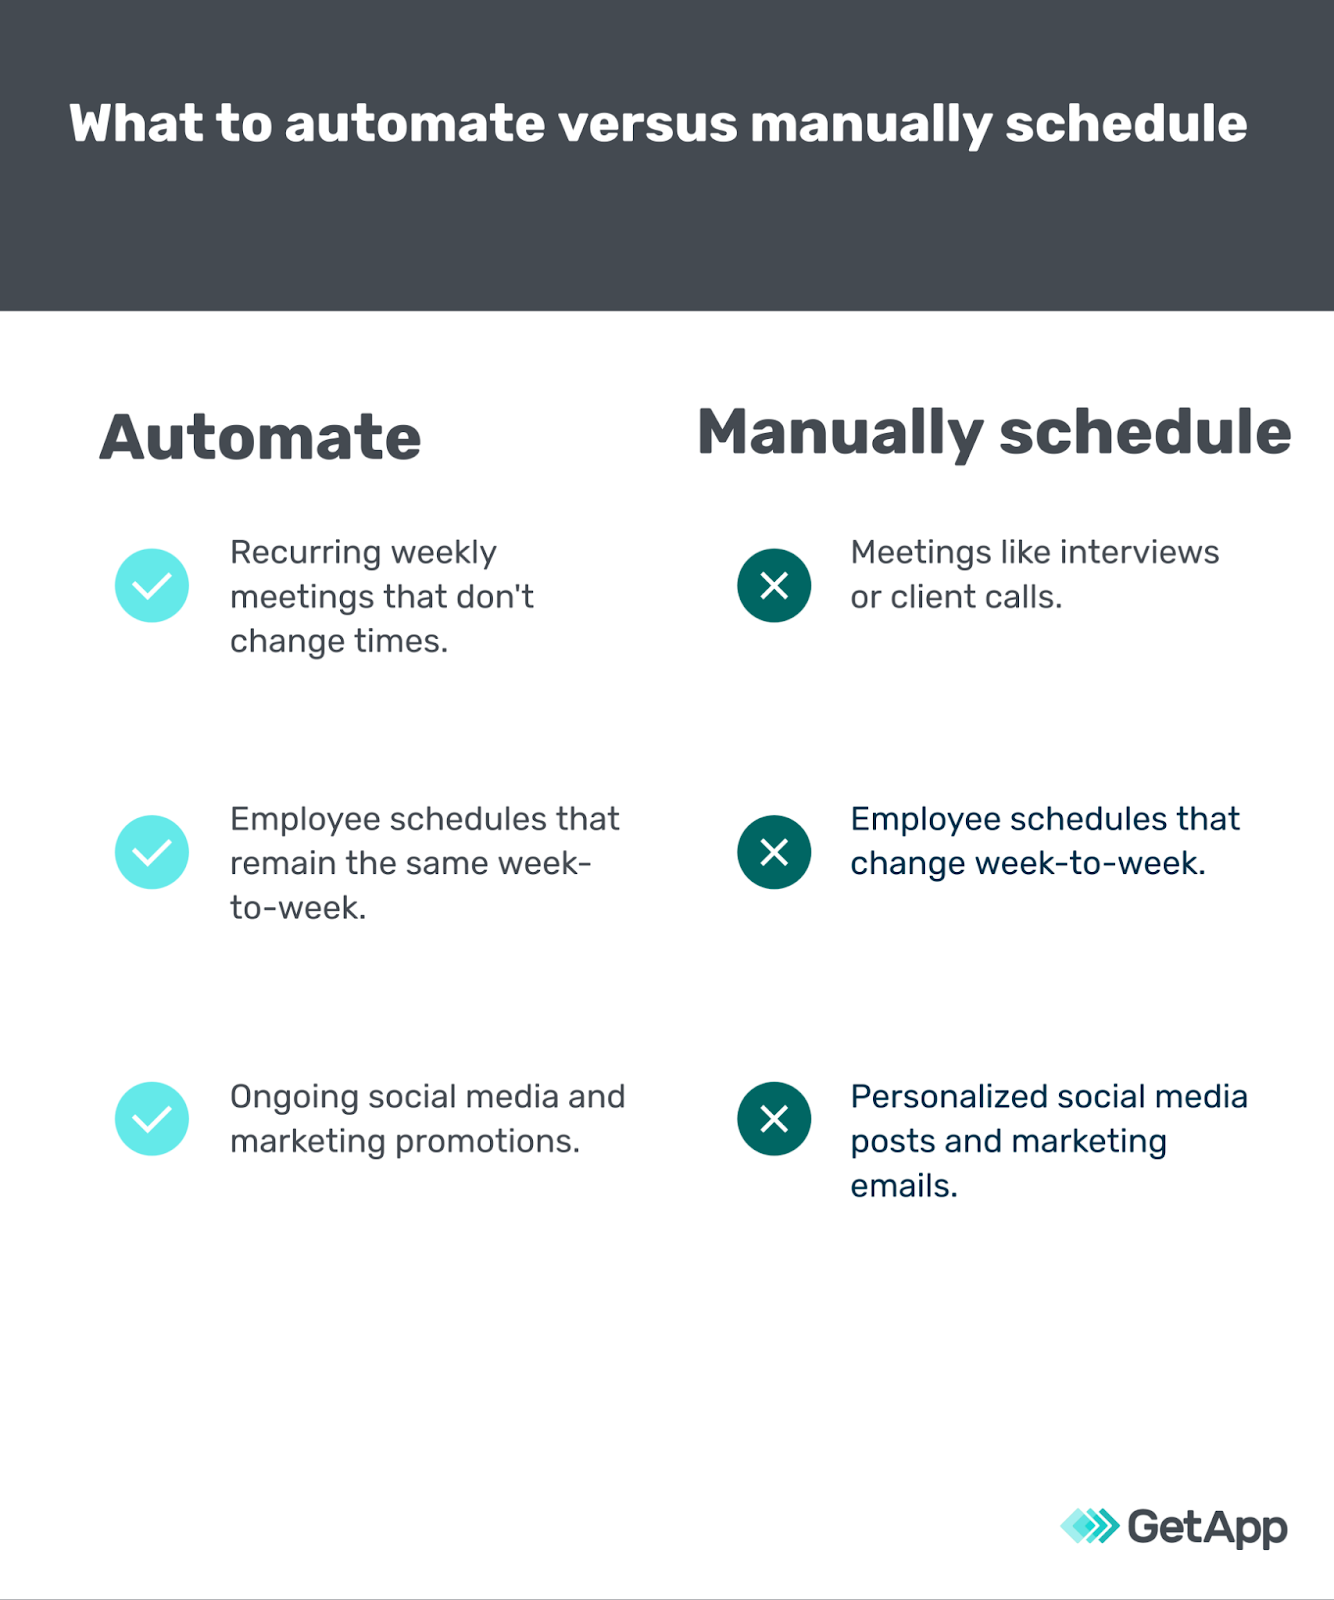 What to automate versus manually schedule infographic